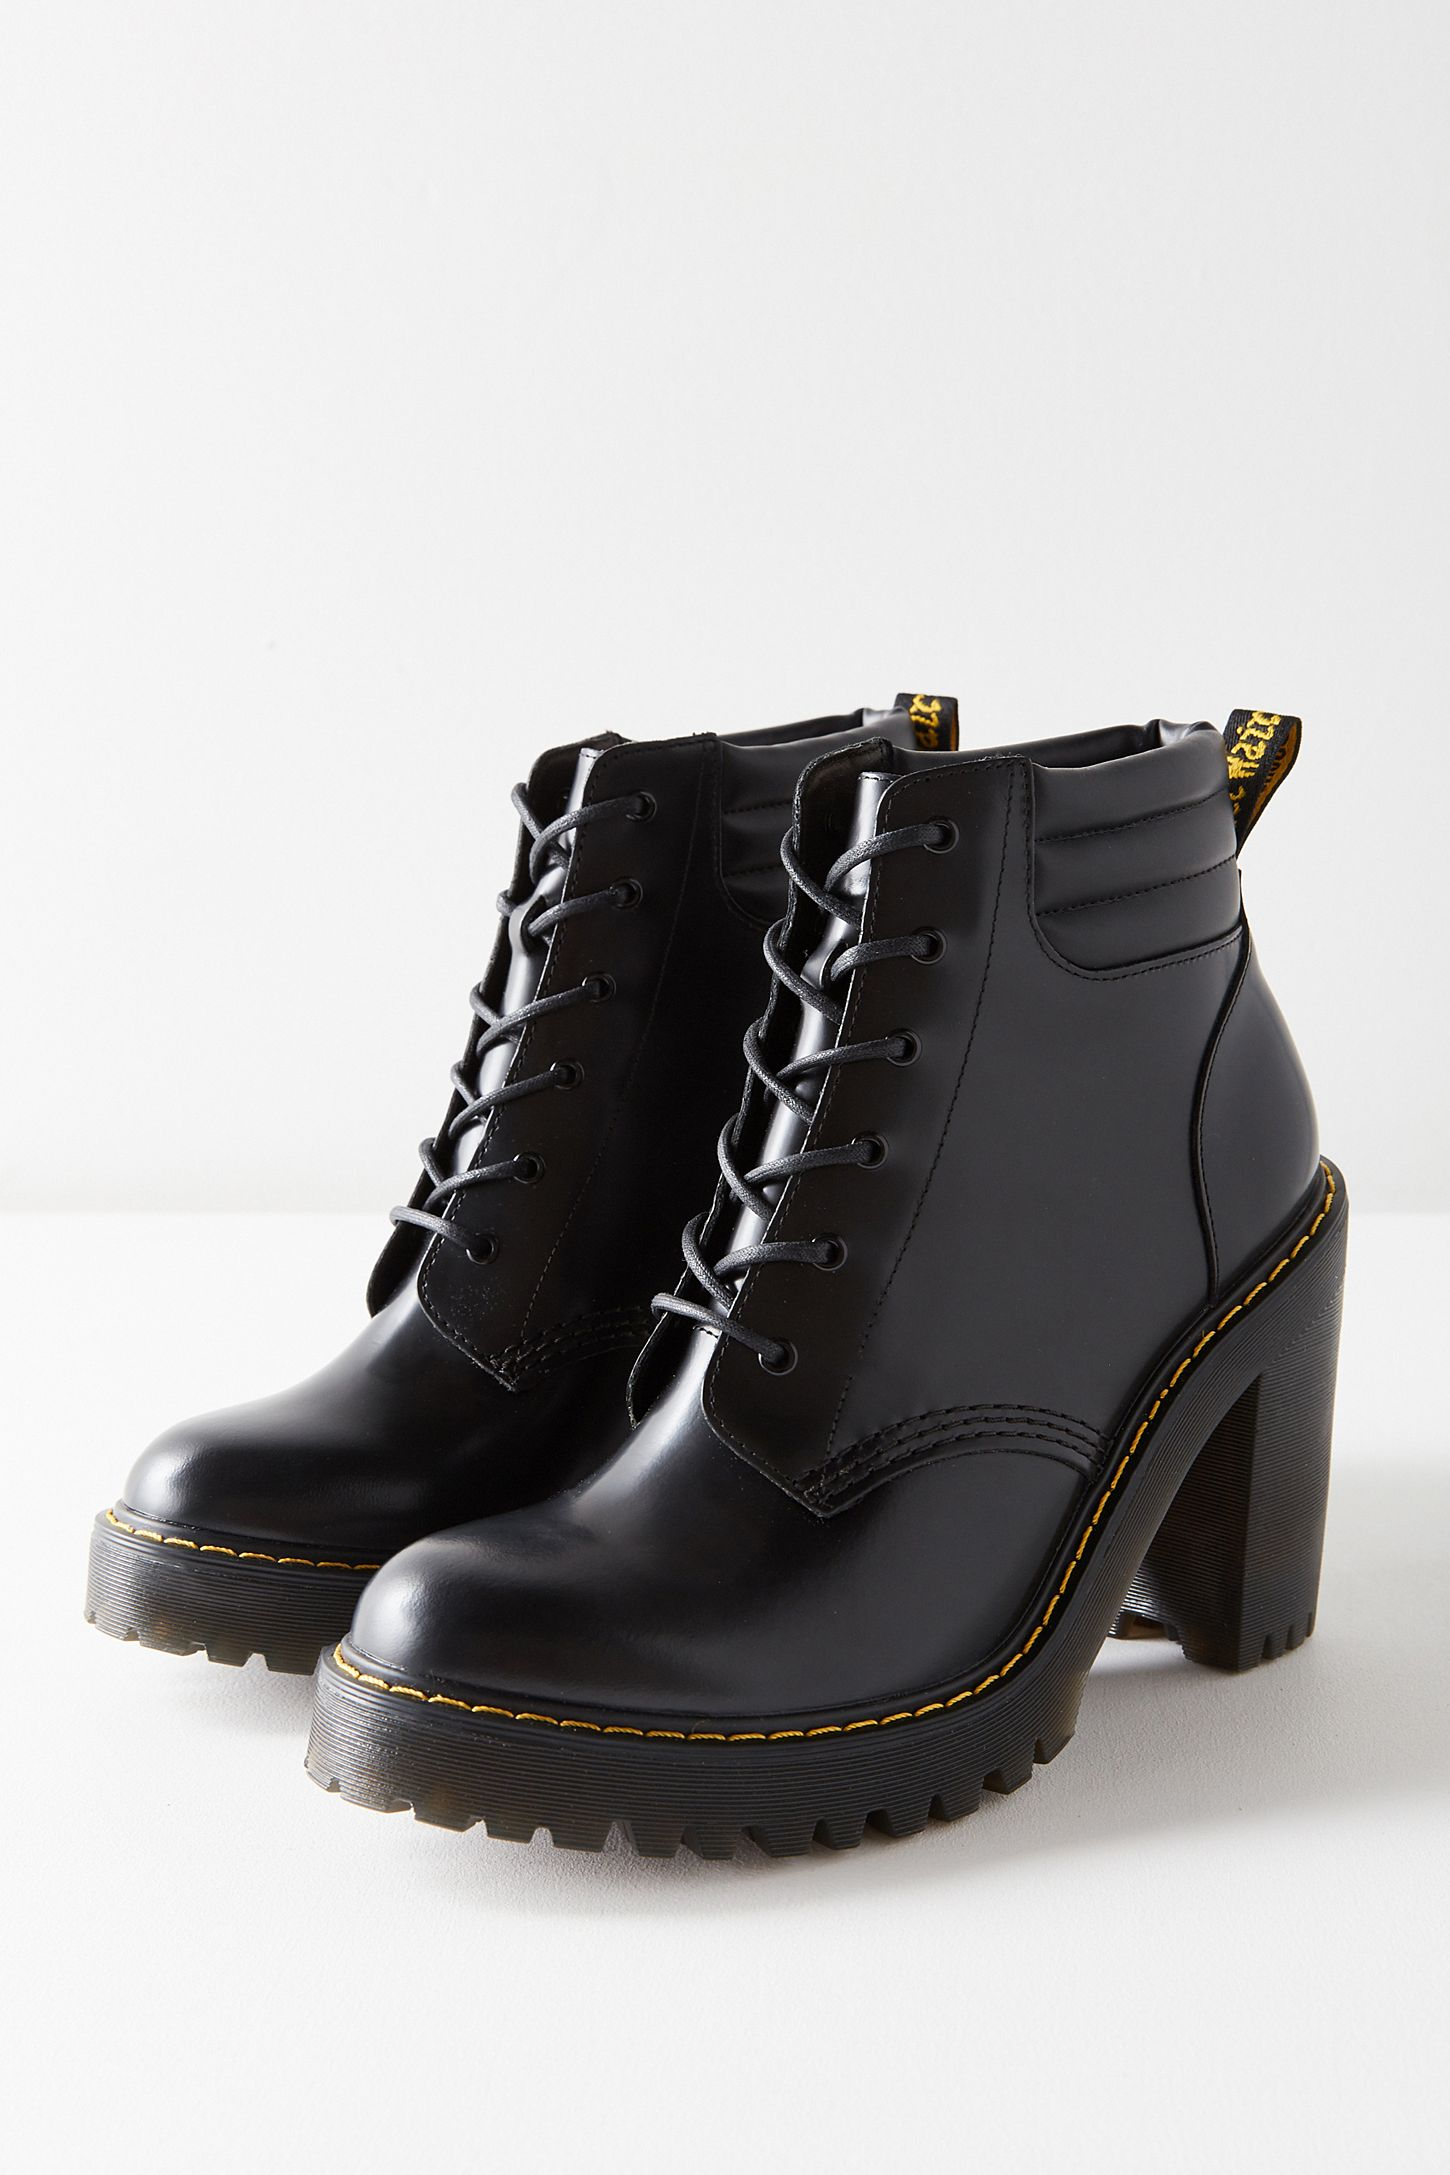 9f44a03f2952 Dr. Martens Persephone Buttero Lace-Up Ankle Boot